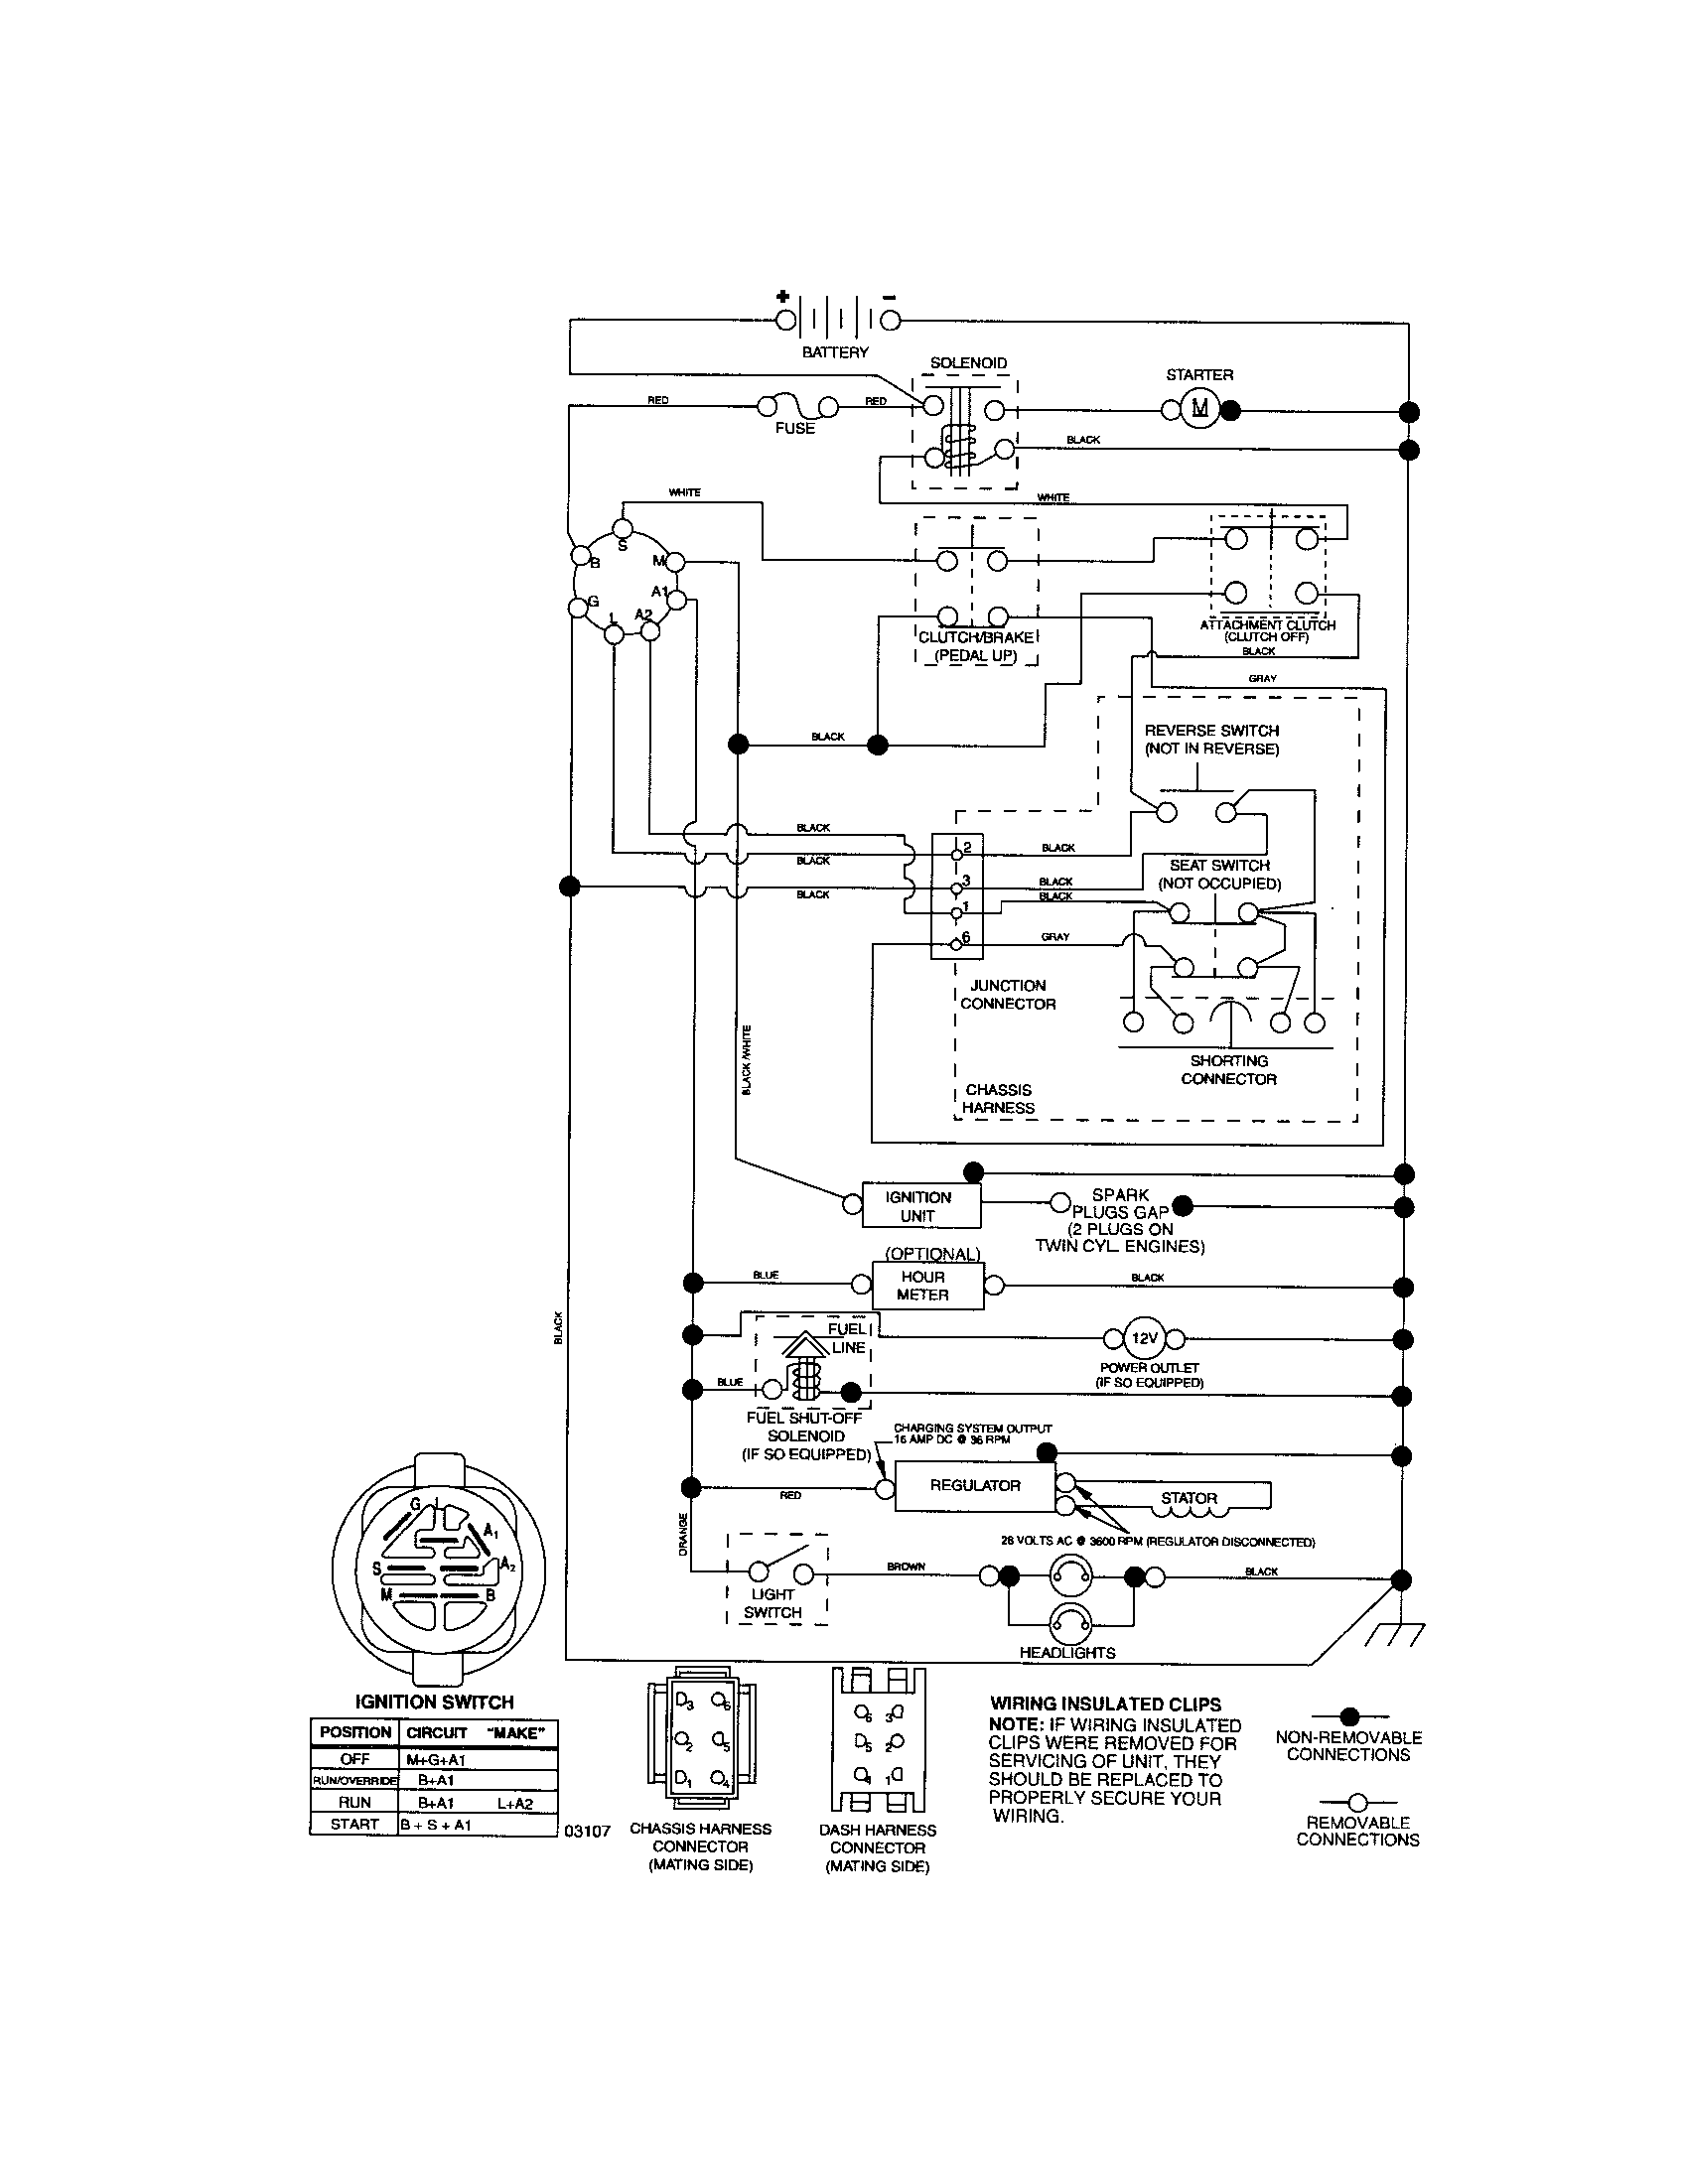 6af5f1447fd13c8443376822ddc1e105 craftsman riding mower electrical diagram wiring diagram wiring schematic for at gsmx.co